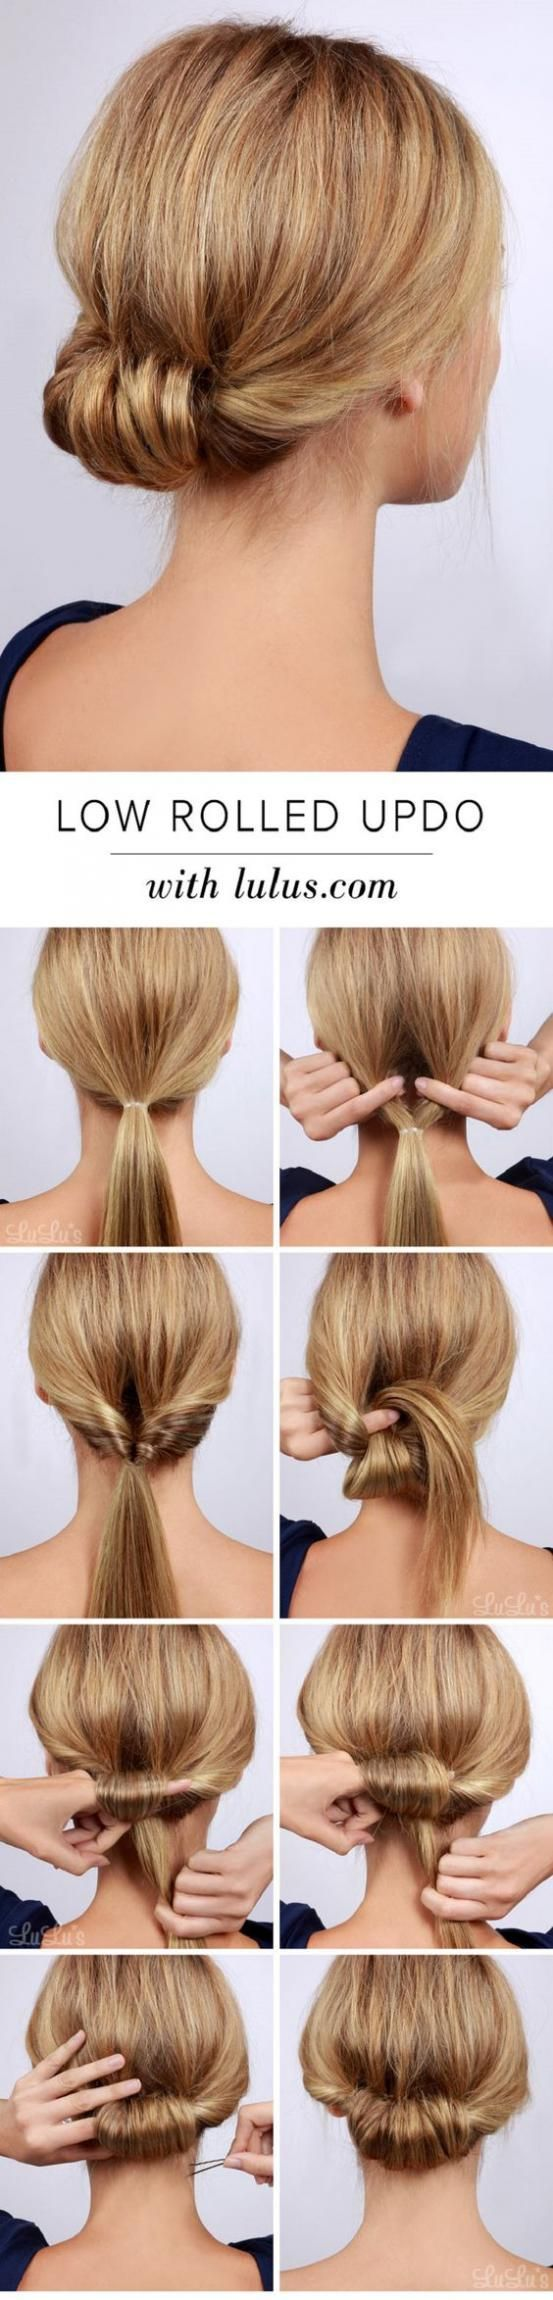 best opgestoken vlecht images on pinterest hair dos hairstyle